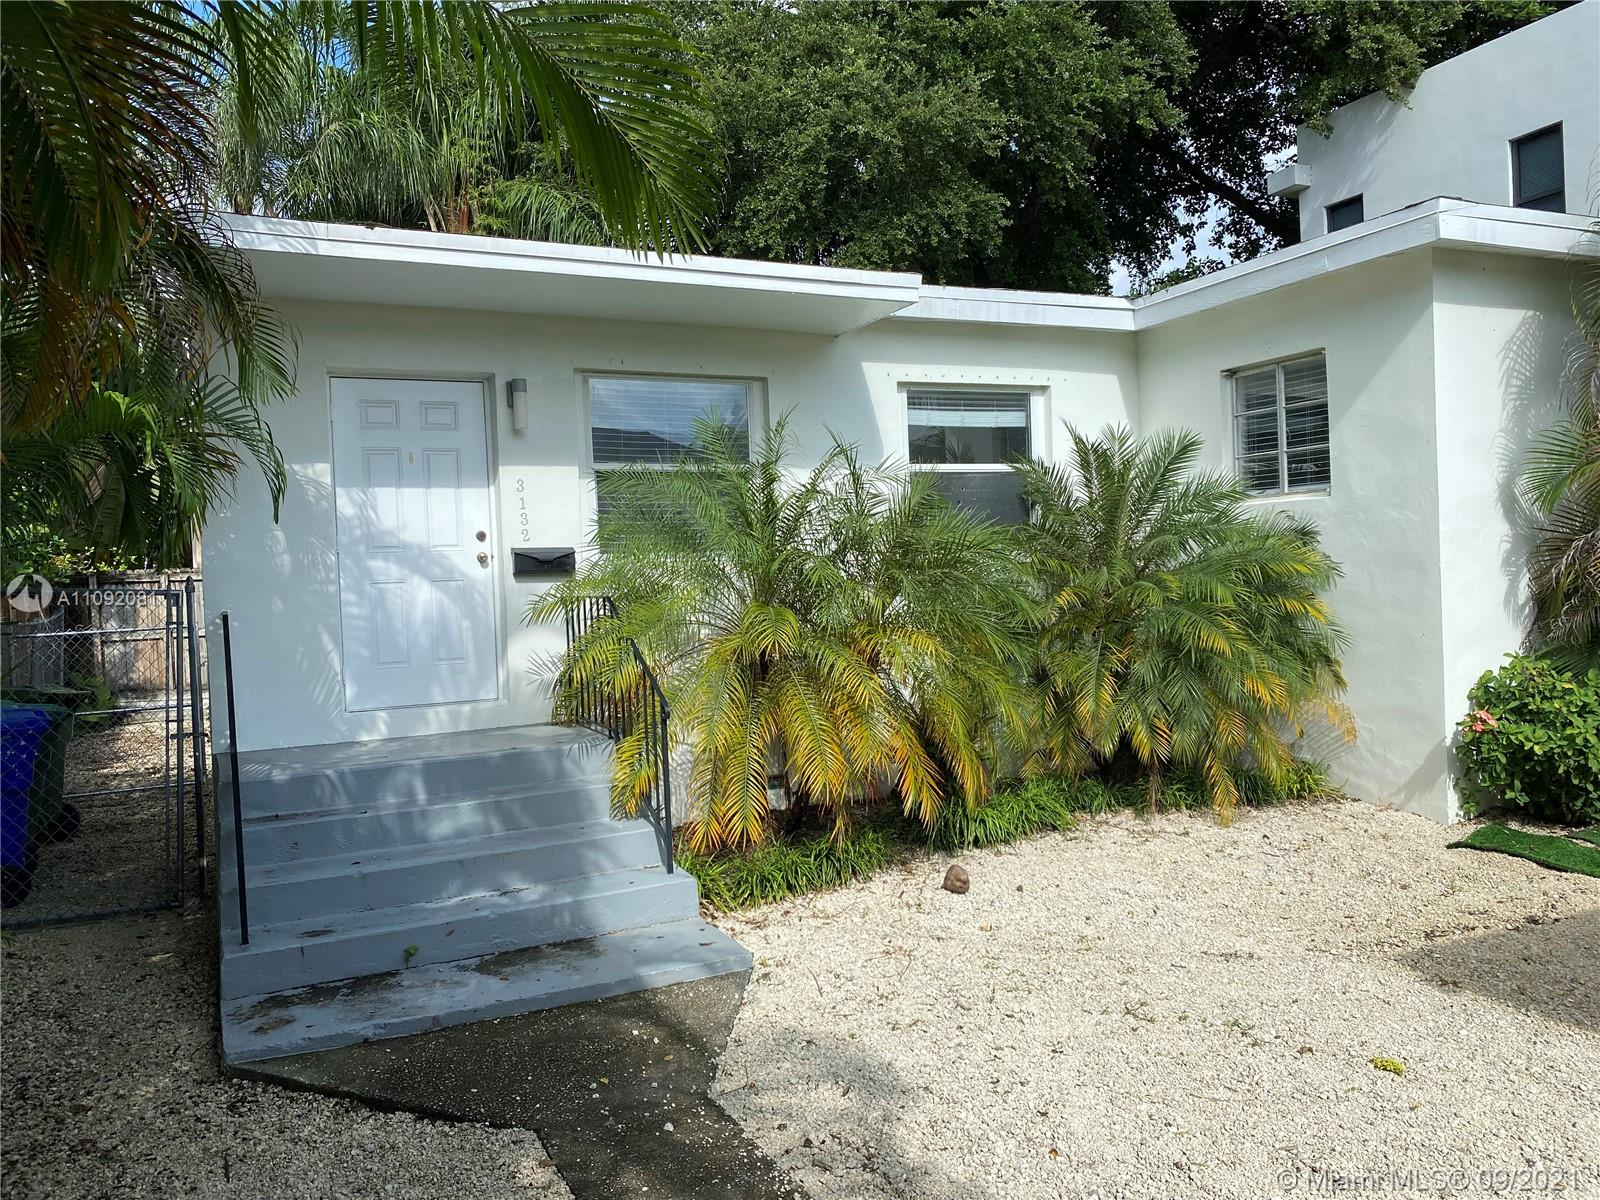 Charming Grove bungalow in Center West Grove. 2/1 with a nice fenced yard. Property has 2 structures on Duplex lot. You are in your own freestanding unit with a private yard. Wood floors with recently updated kitchen and bath. Location is close to everything the Coconut Grove area has to offer.